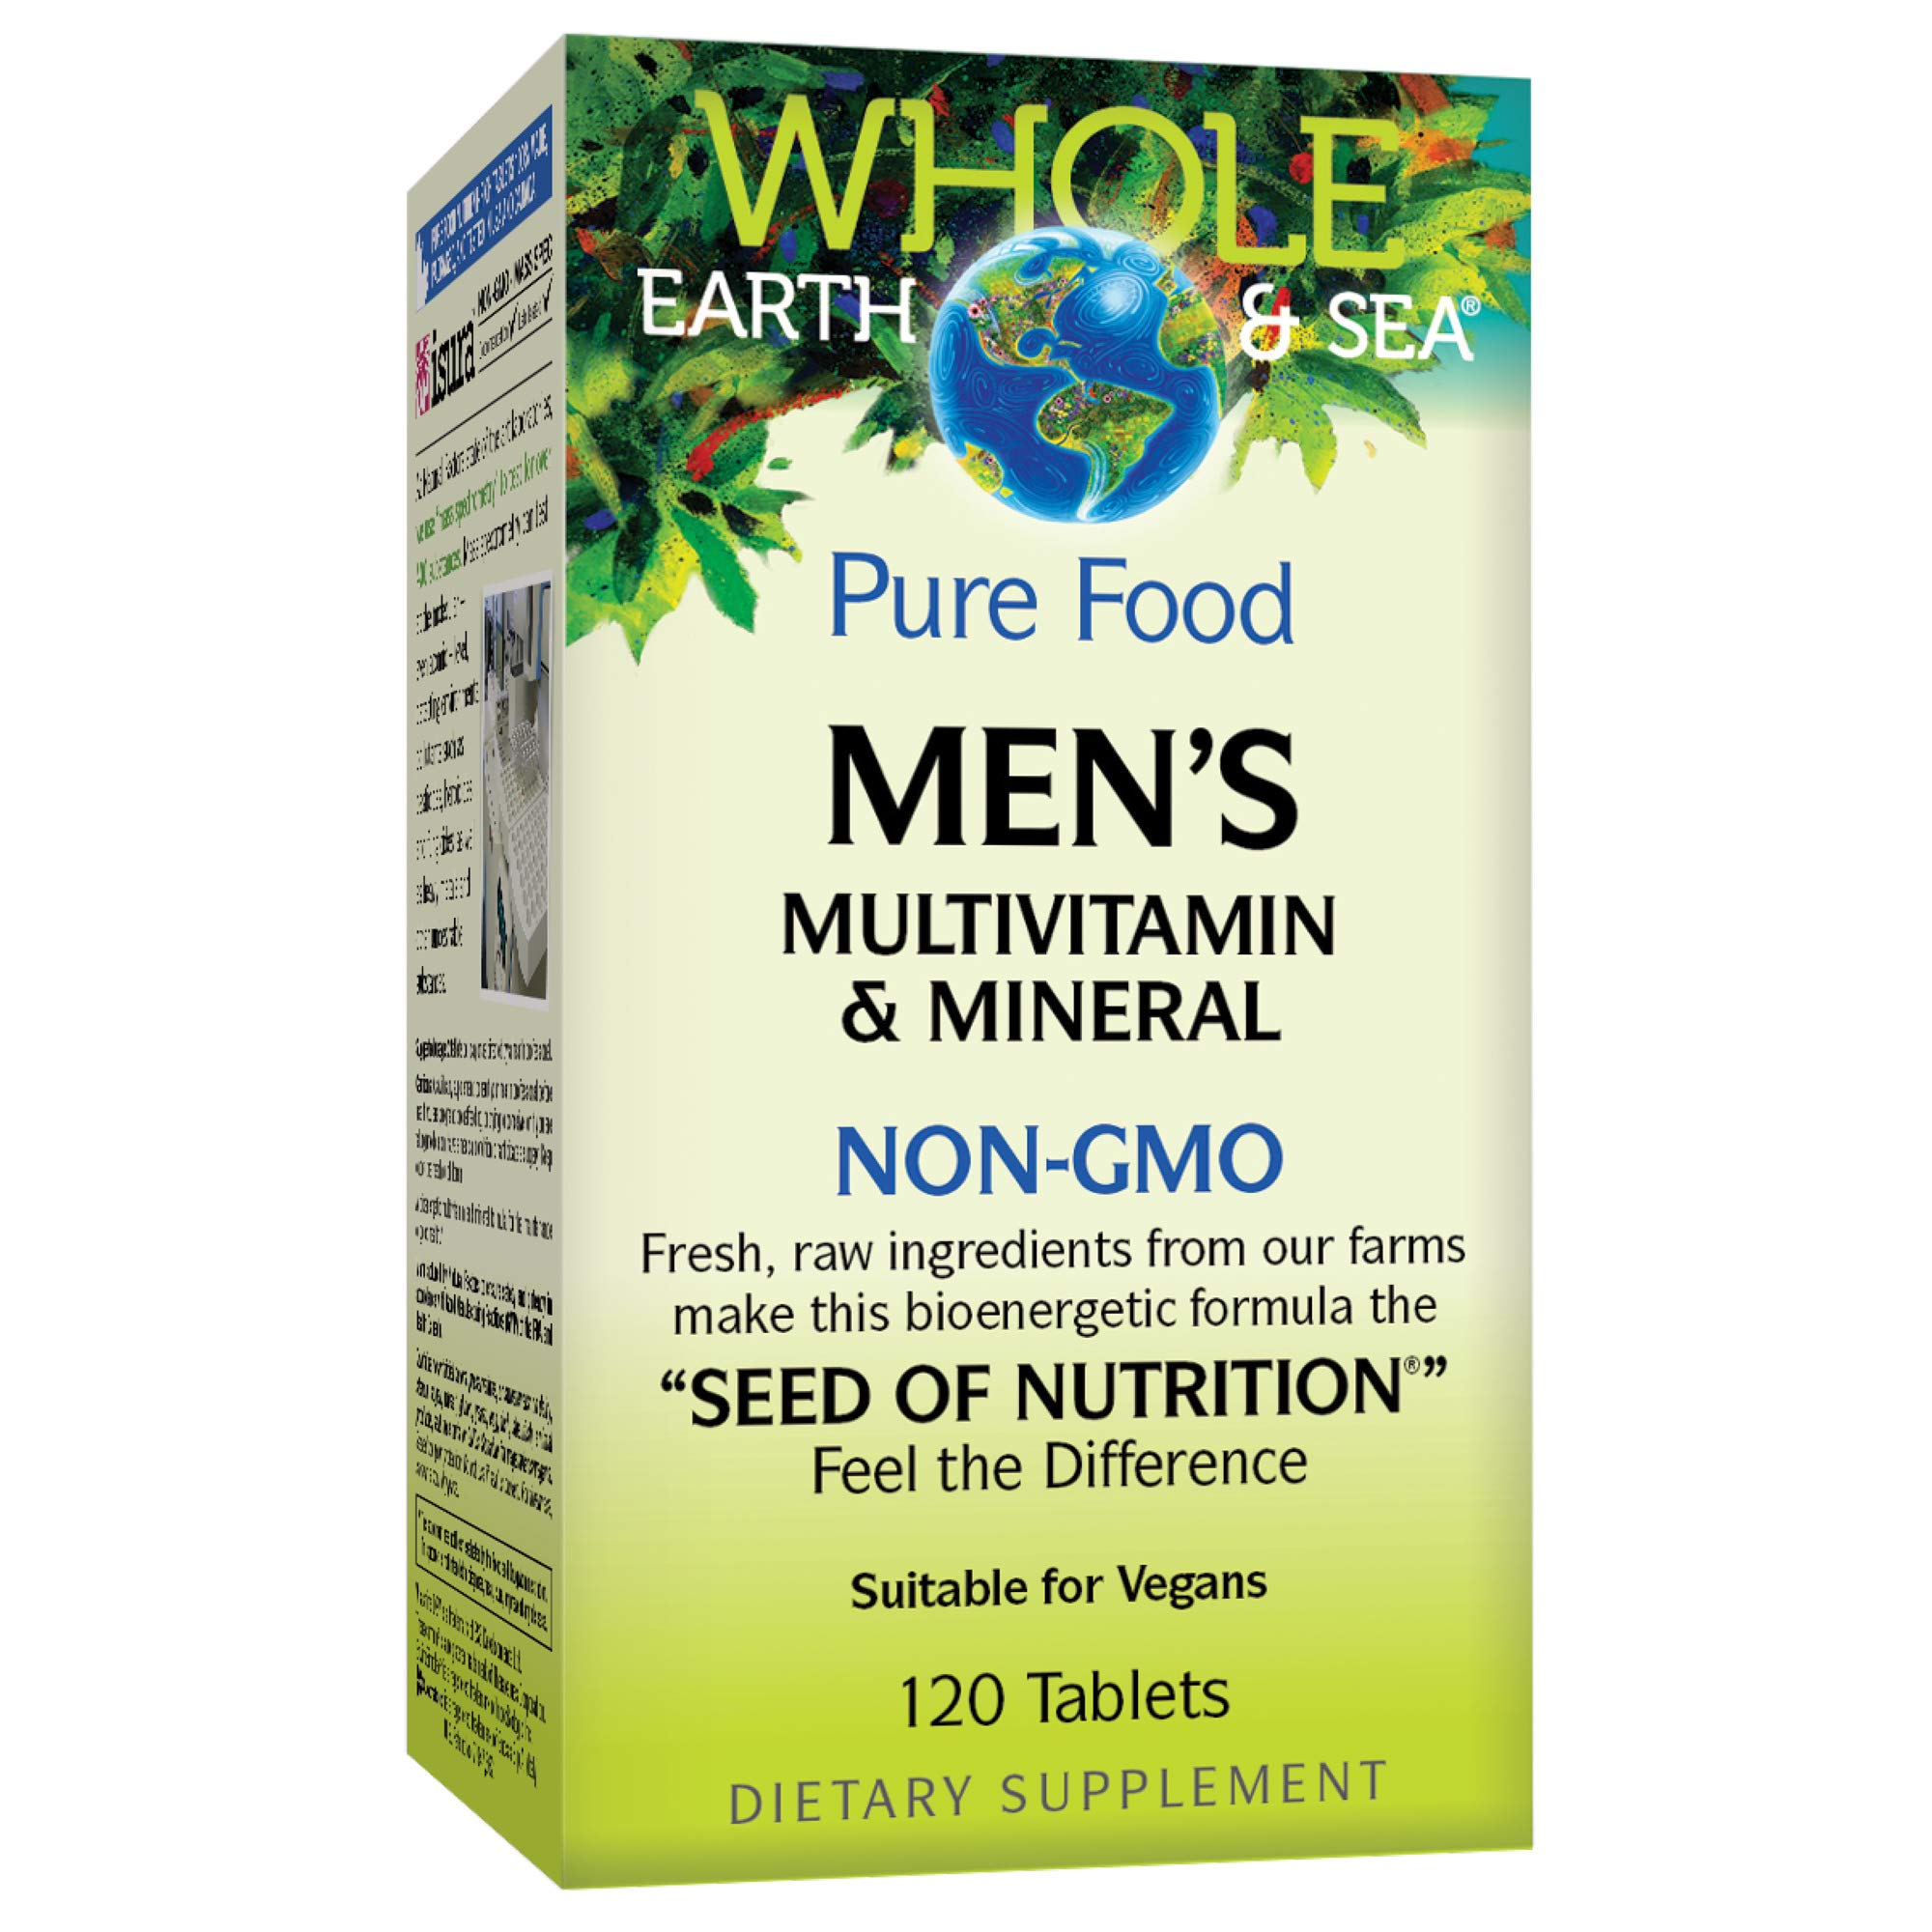 Whole Earth & Sea from Natural Factors, Men's Multivitamin & Mineral, Whole Food Supplement, Vegan and Gluten Free, 120 Tablets (60 Servings) by Natural Factors